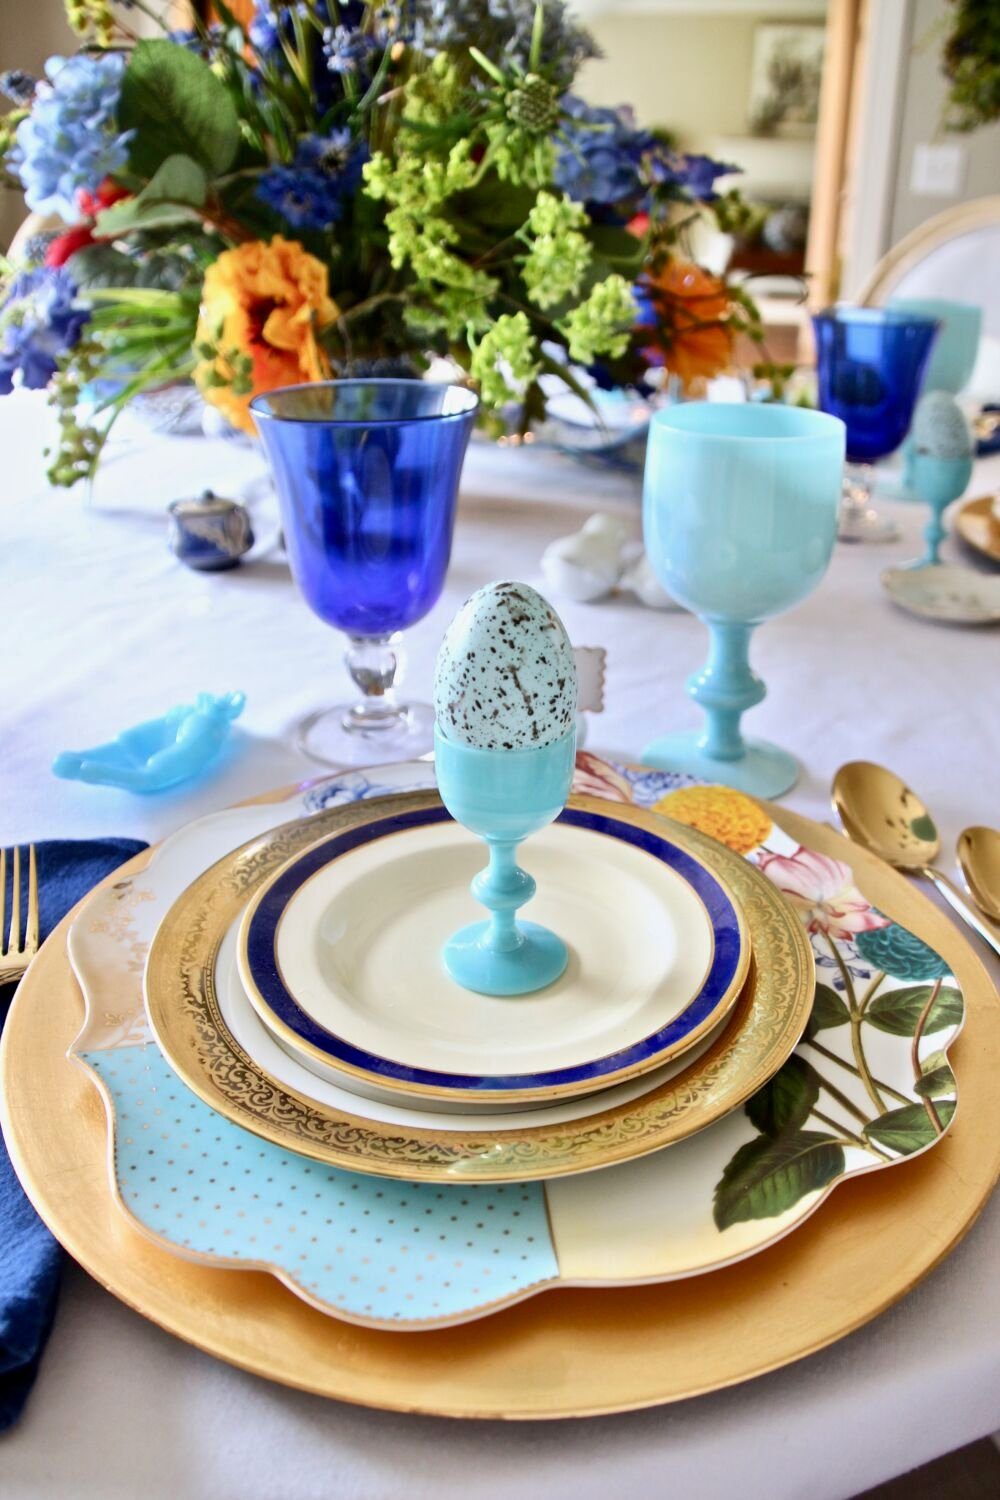 Tradtional_home_Easter_tablescape_setting_table_round_color_modern_mix_floral_arrangement_cobalt_delft_blue_dinnerware_dining_room_robins_egg_amara_pip_studio